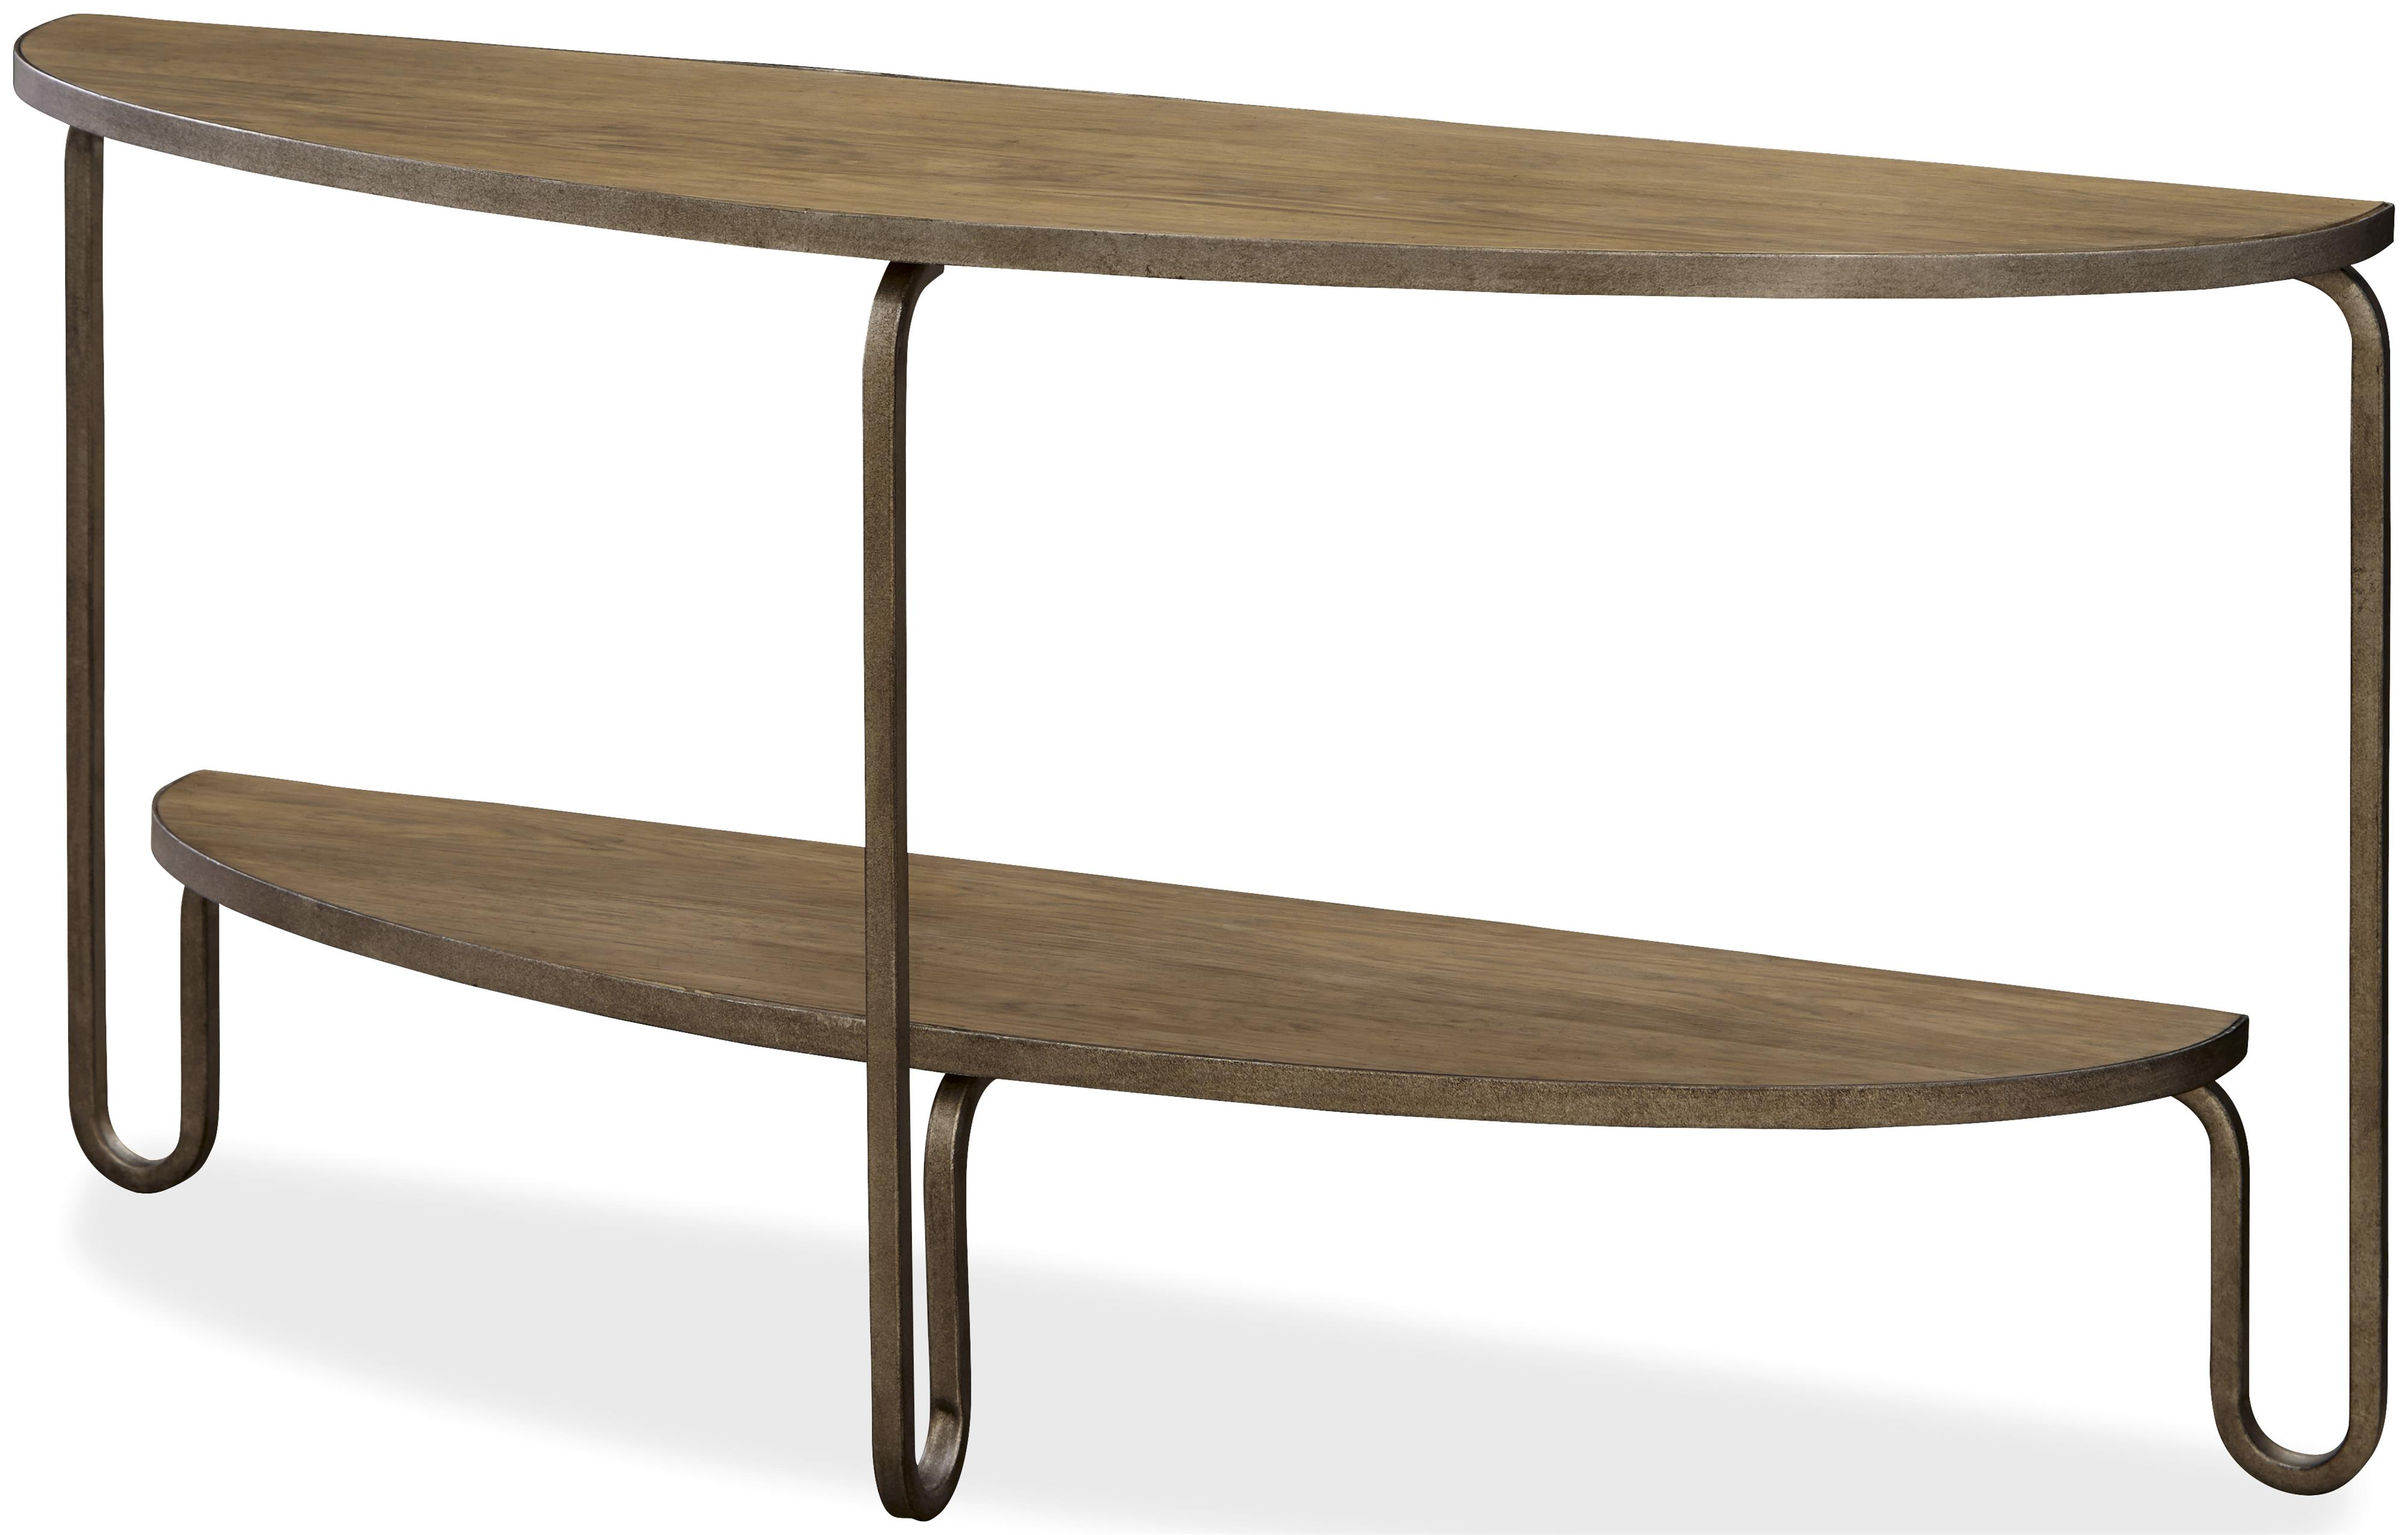 Universal Moderne Muse Console Table - Item Number: 414816